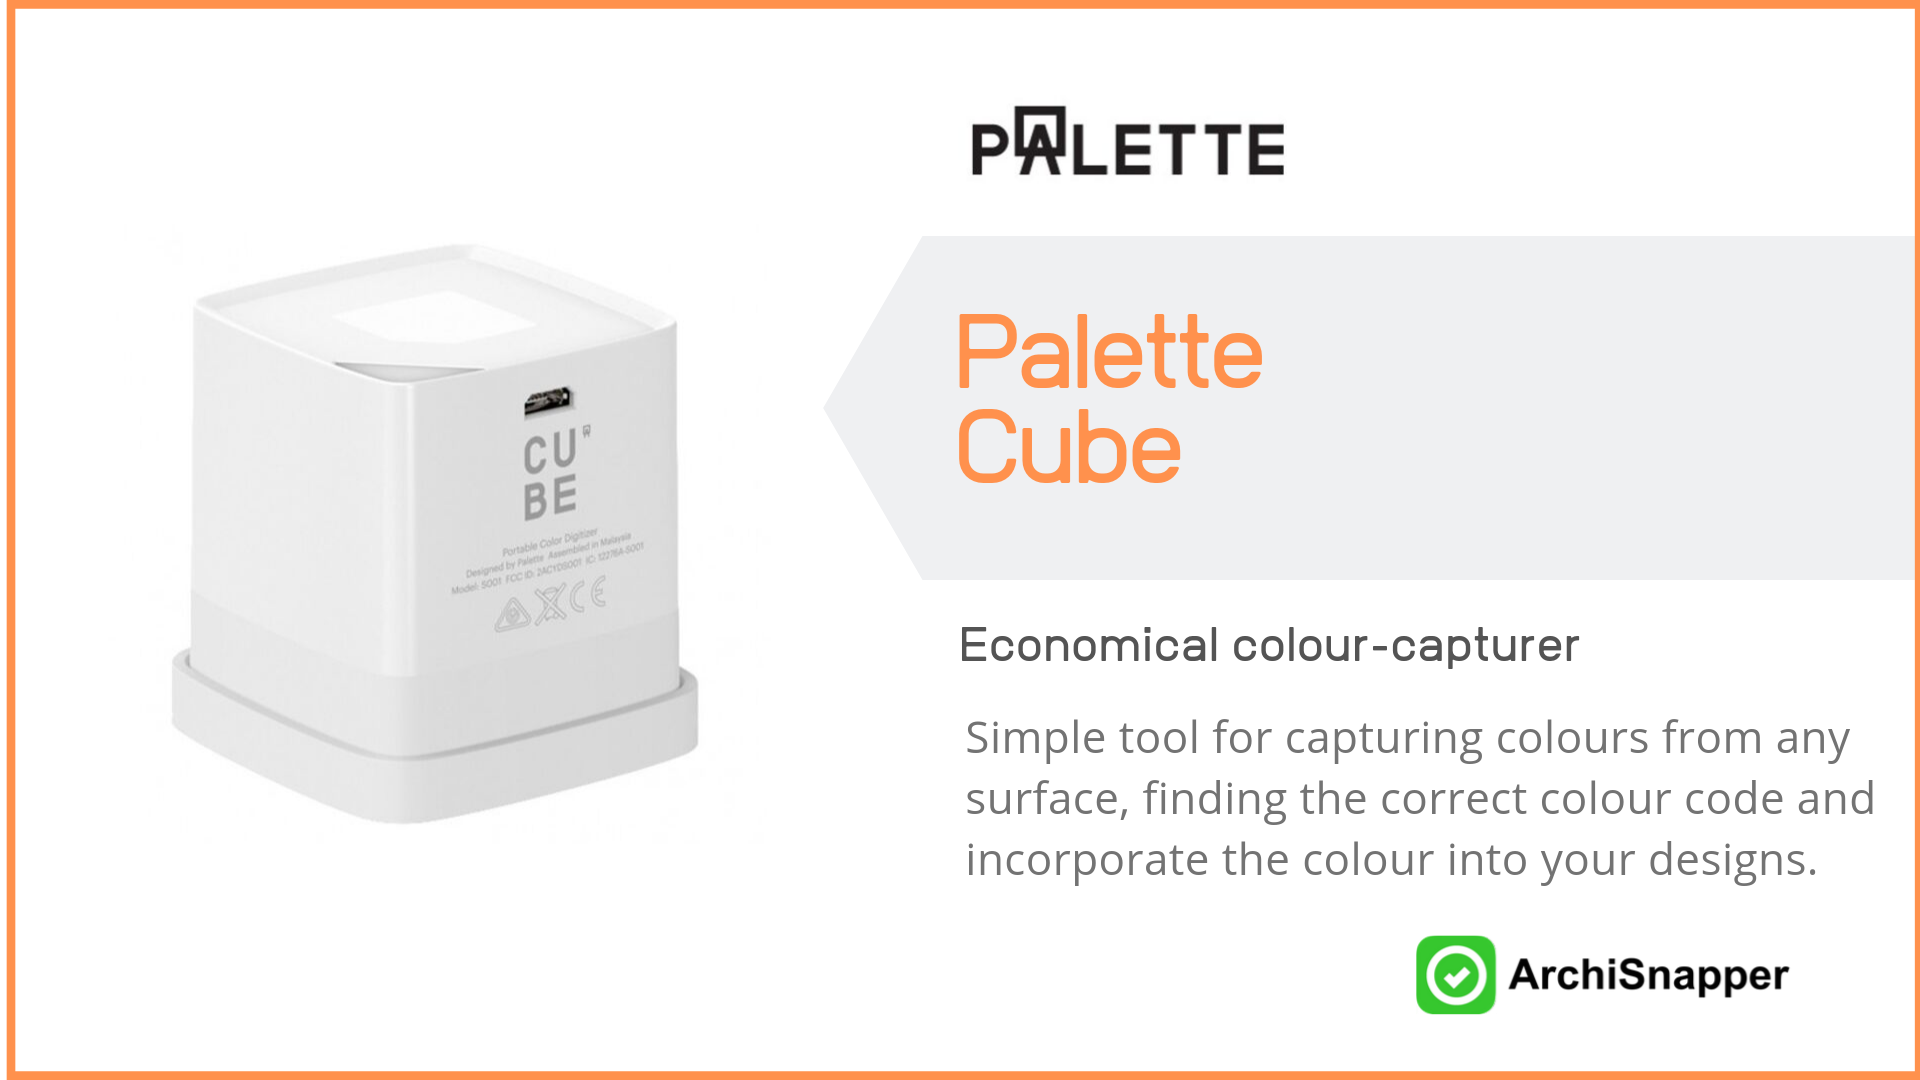 Palette Cube List of the 15 must-have tech tools and accessories ideal for architects presented by Archisnapper